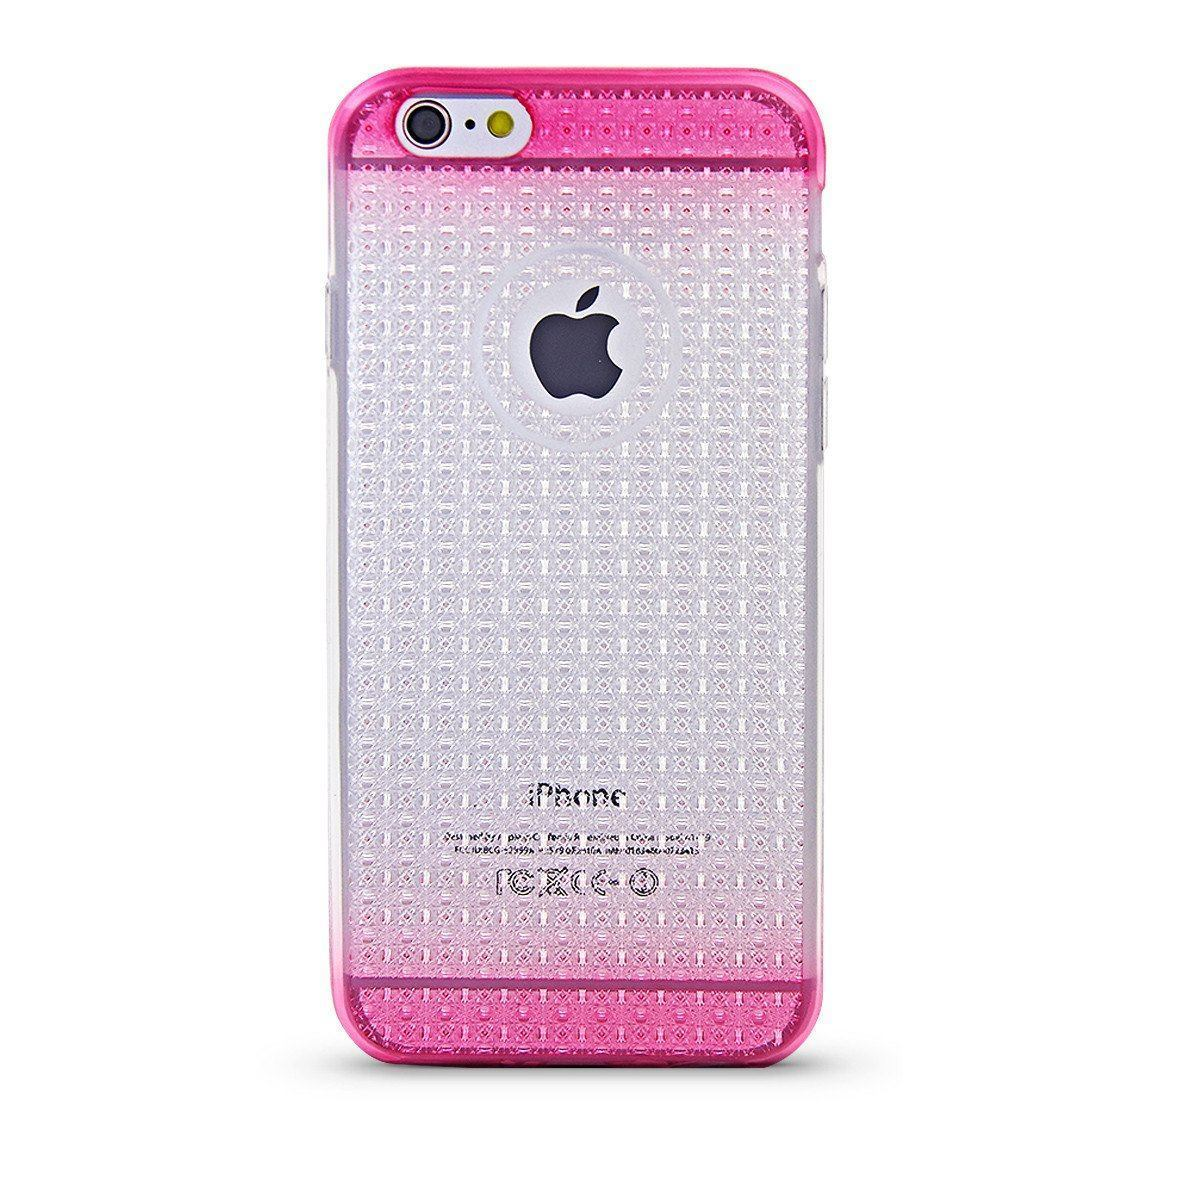 Zoot Case for iPhone 6 - Pink